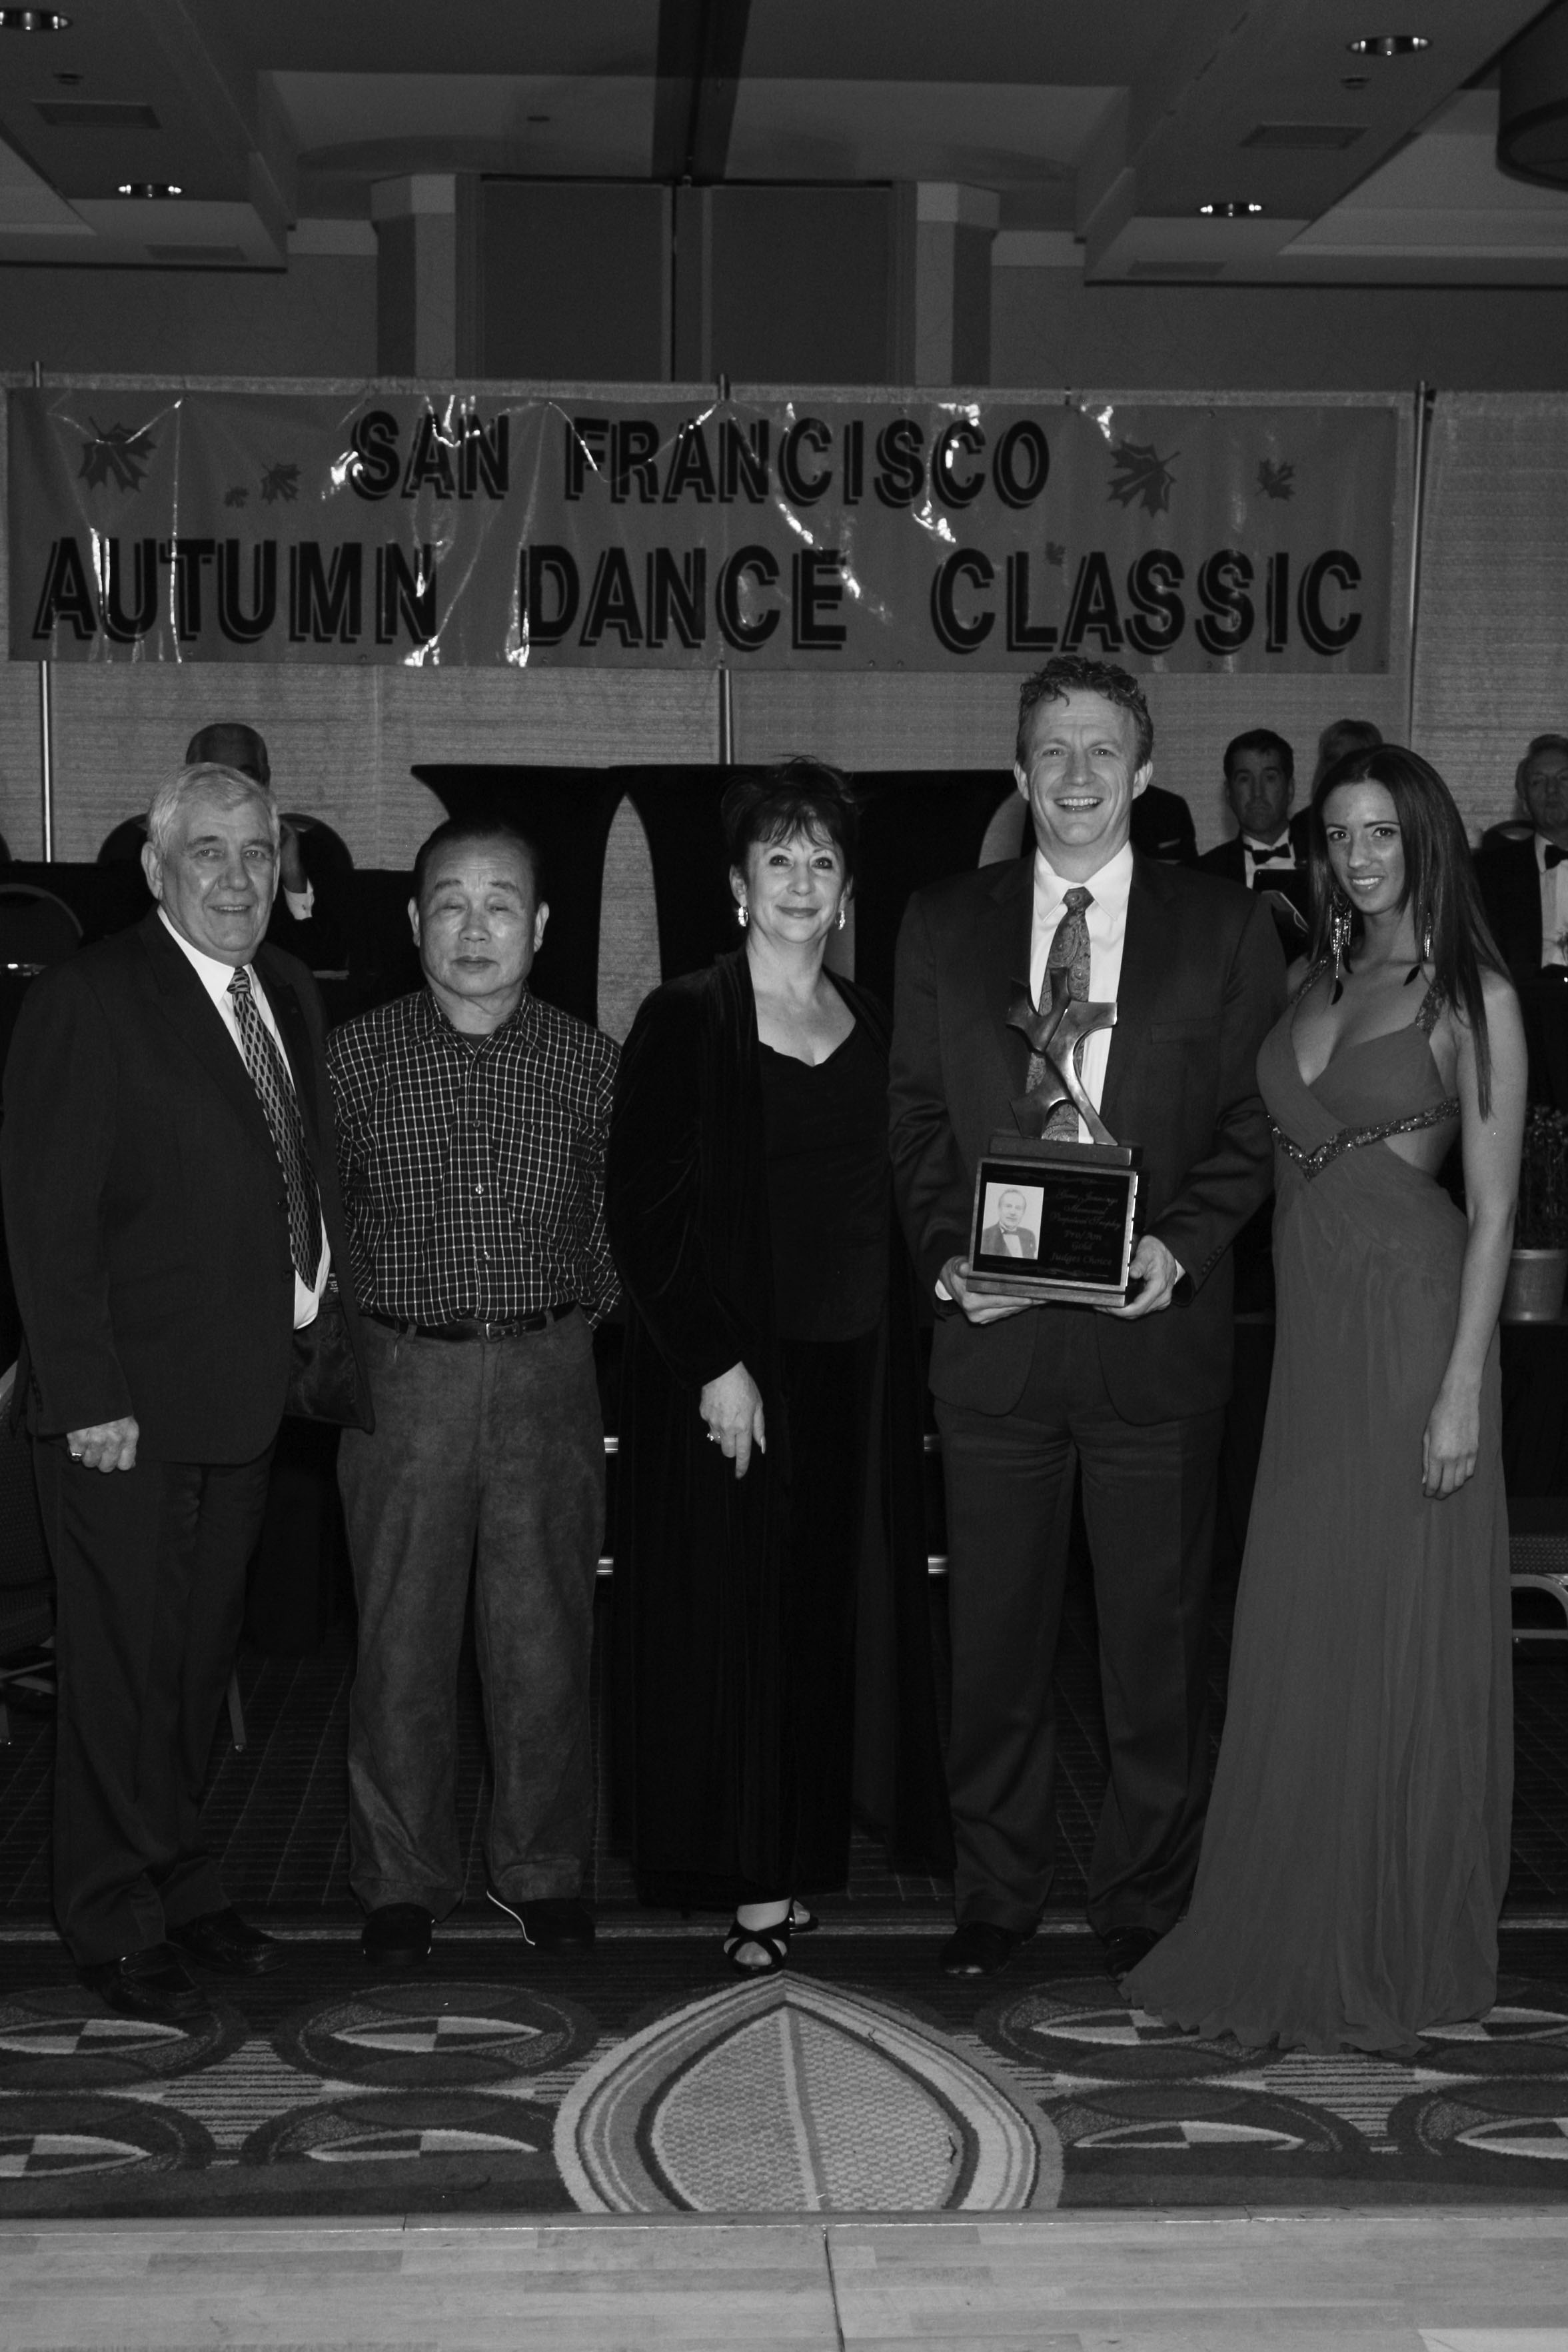 Linda Staver-Former Organizer of San Francisco Autumn Dance Classic